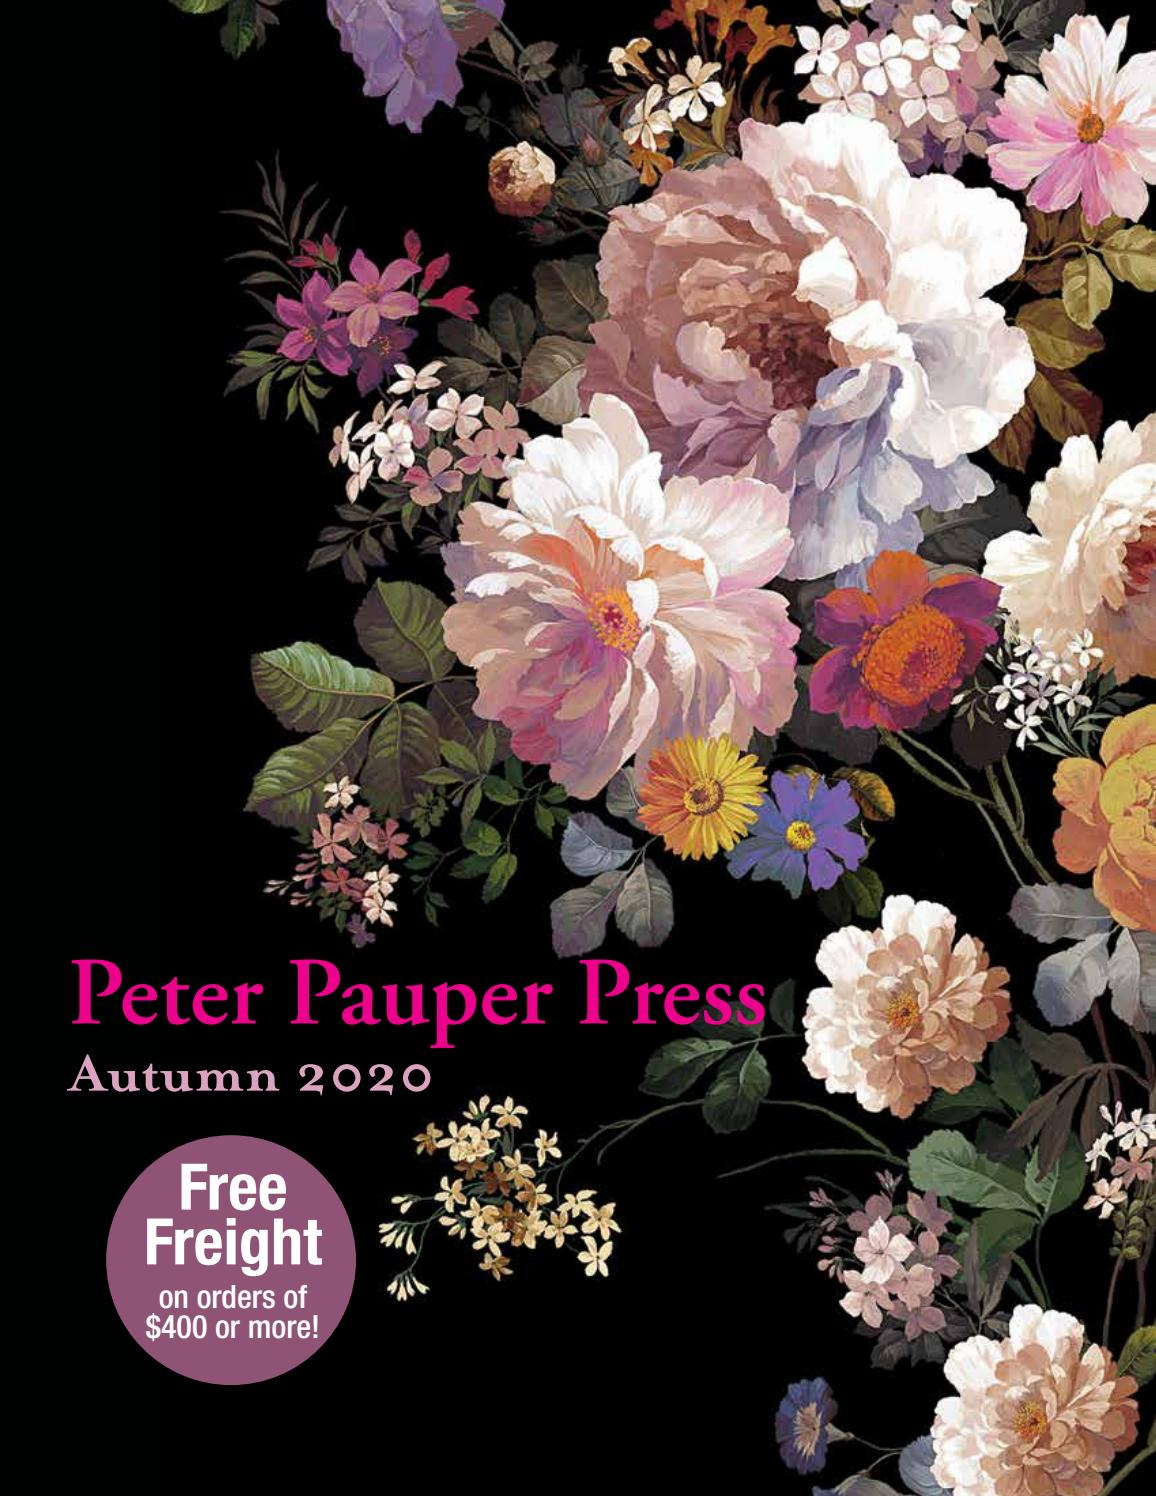 PPP Autumn 2020 Catalog by Just Got 2 Have It! - issuu